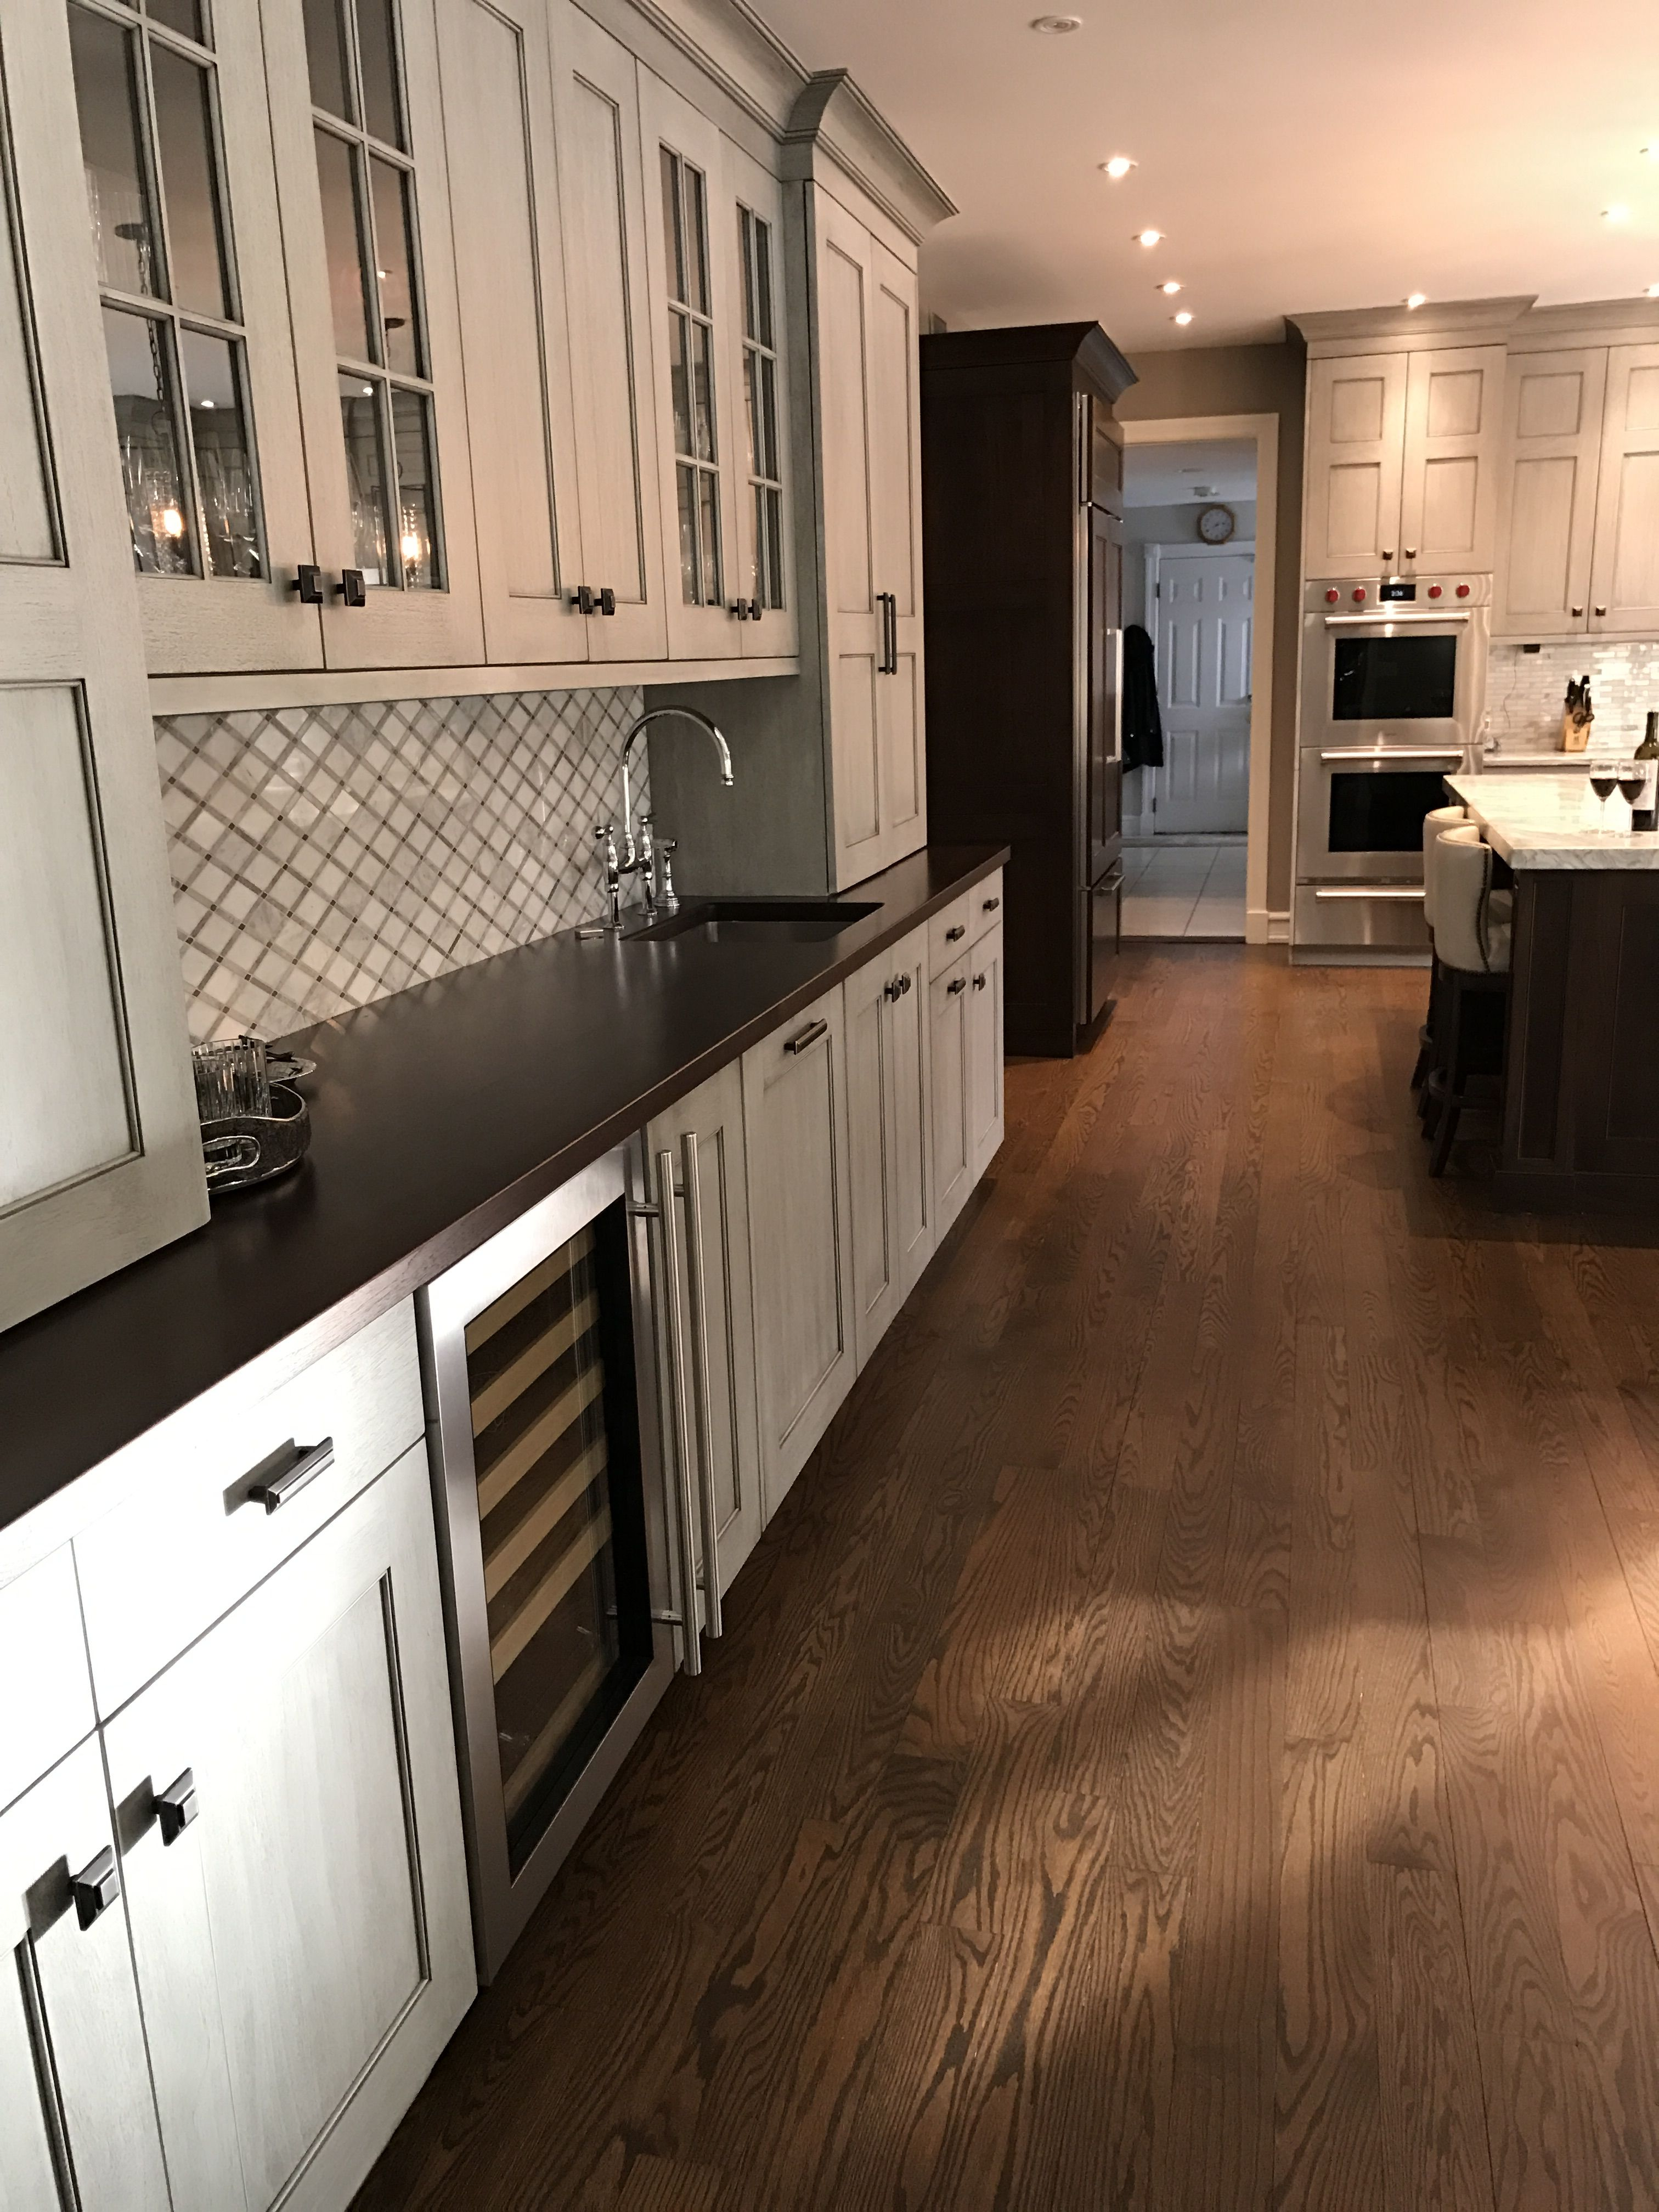 Simply Beautiful Ruttcabinetry Bar Area Off The Kitchen ...